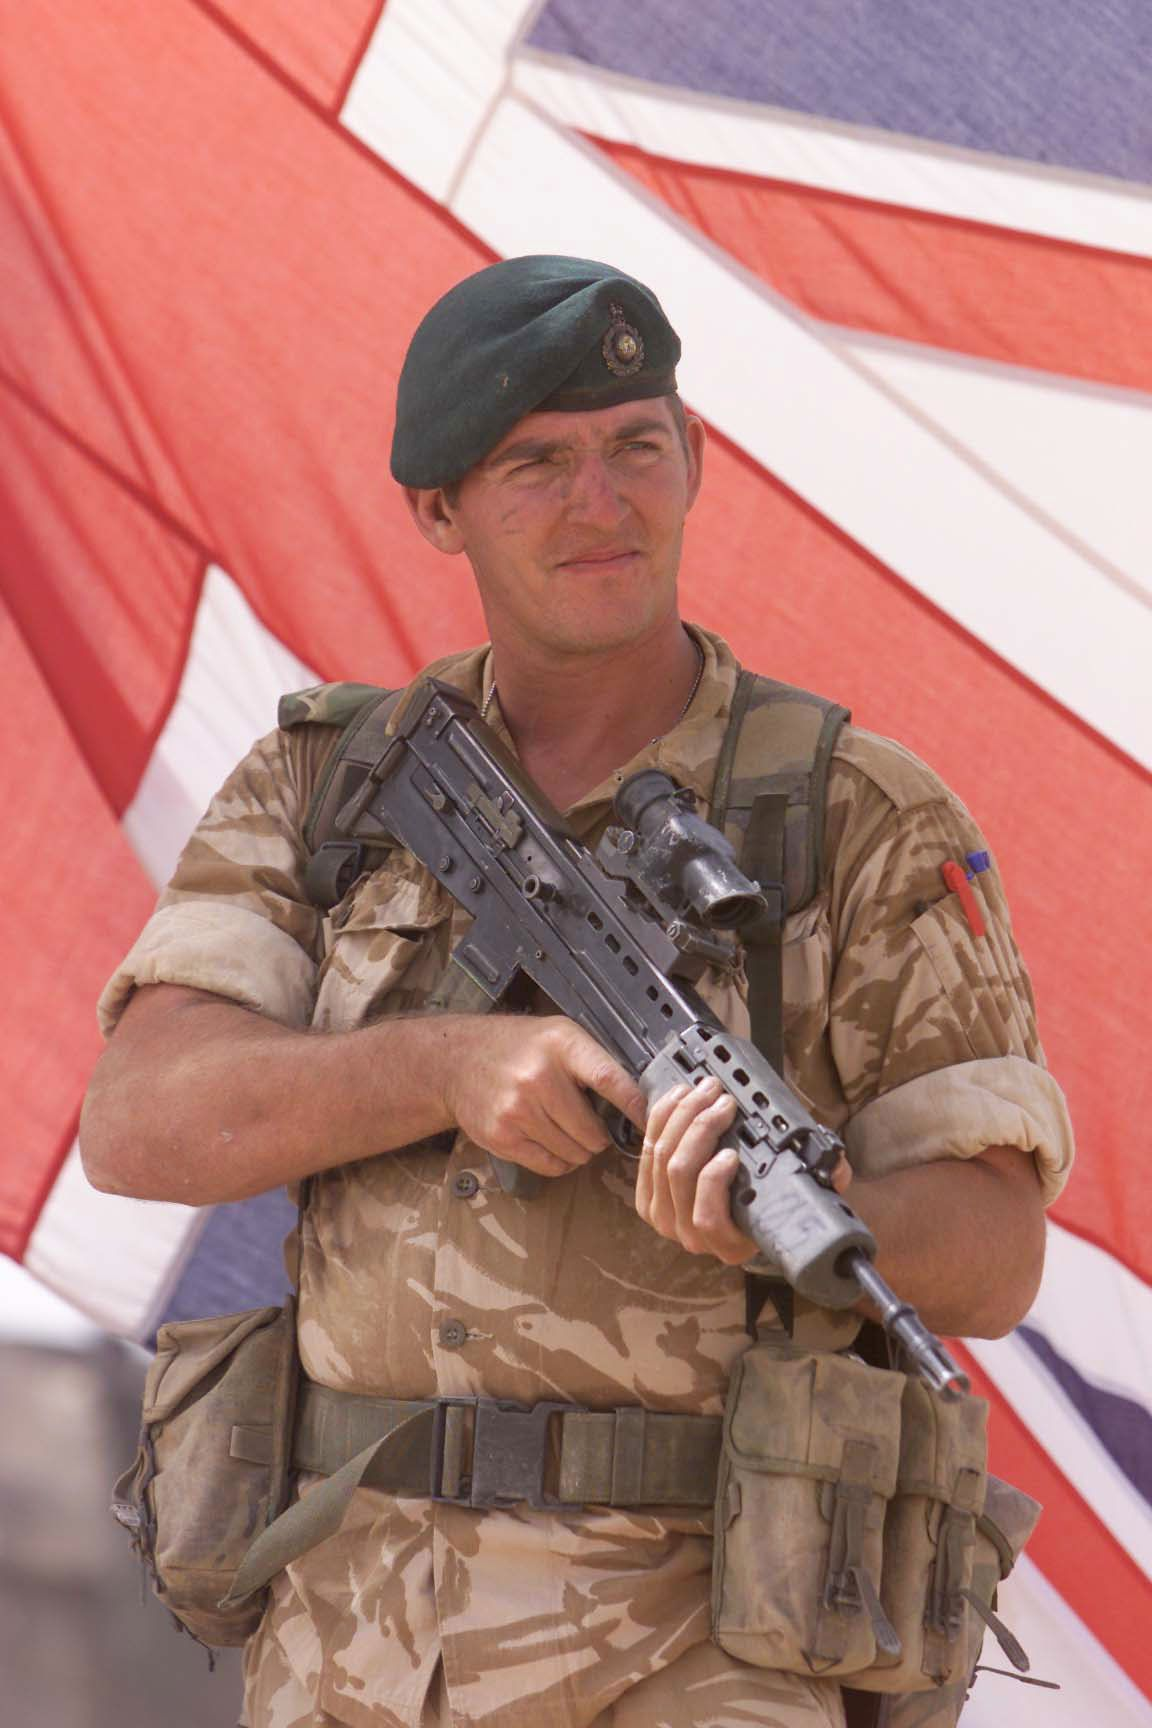 Marine Alexander Blackman Could Walk Free From Prison Within